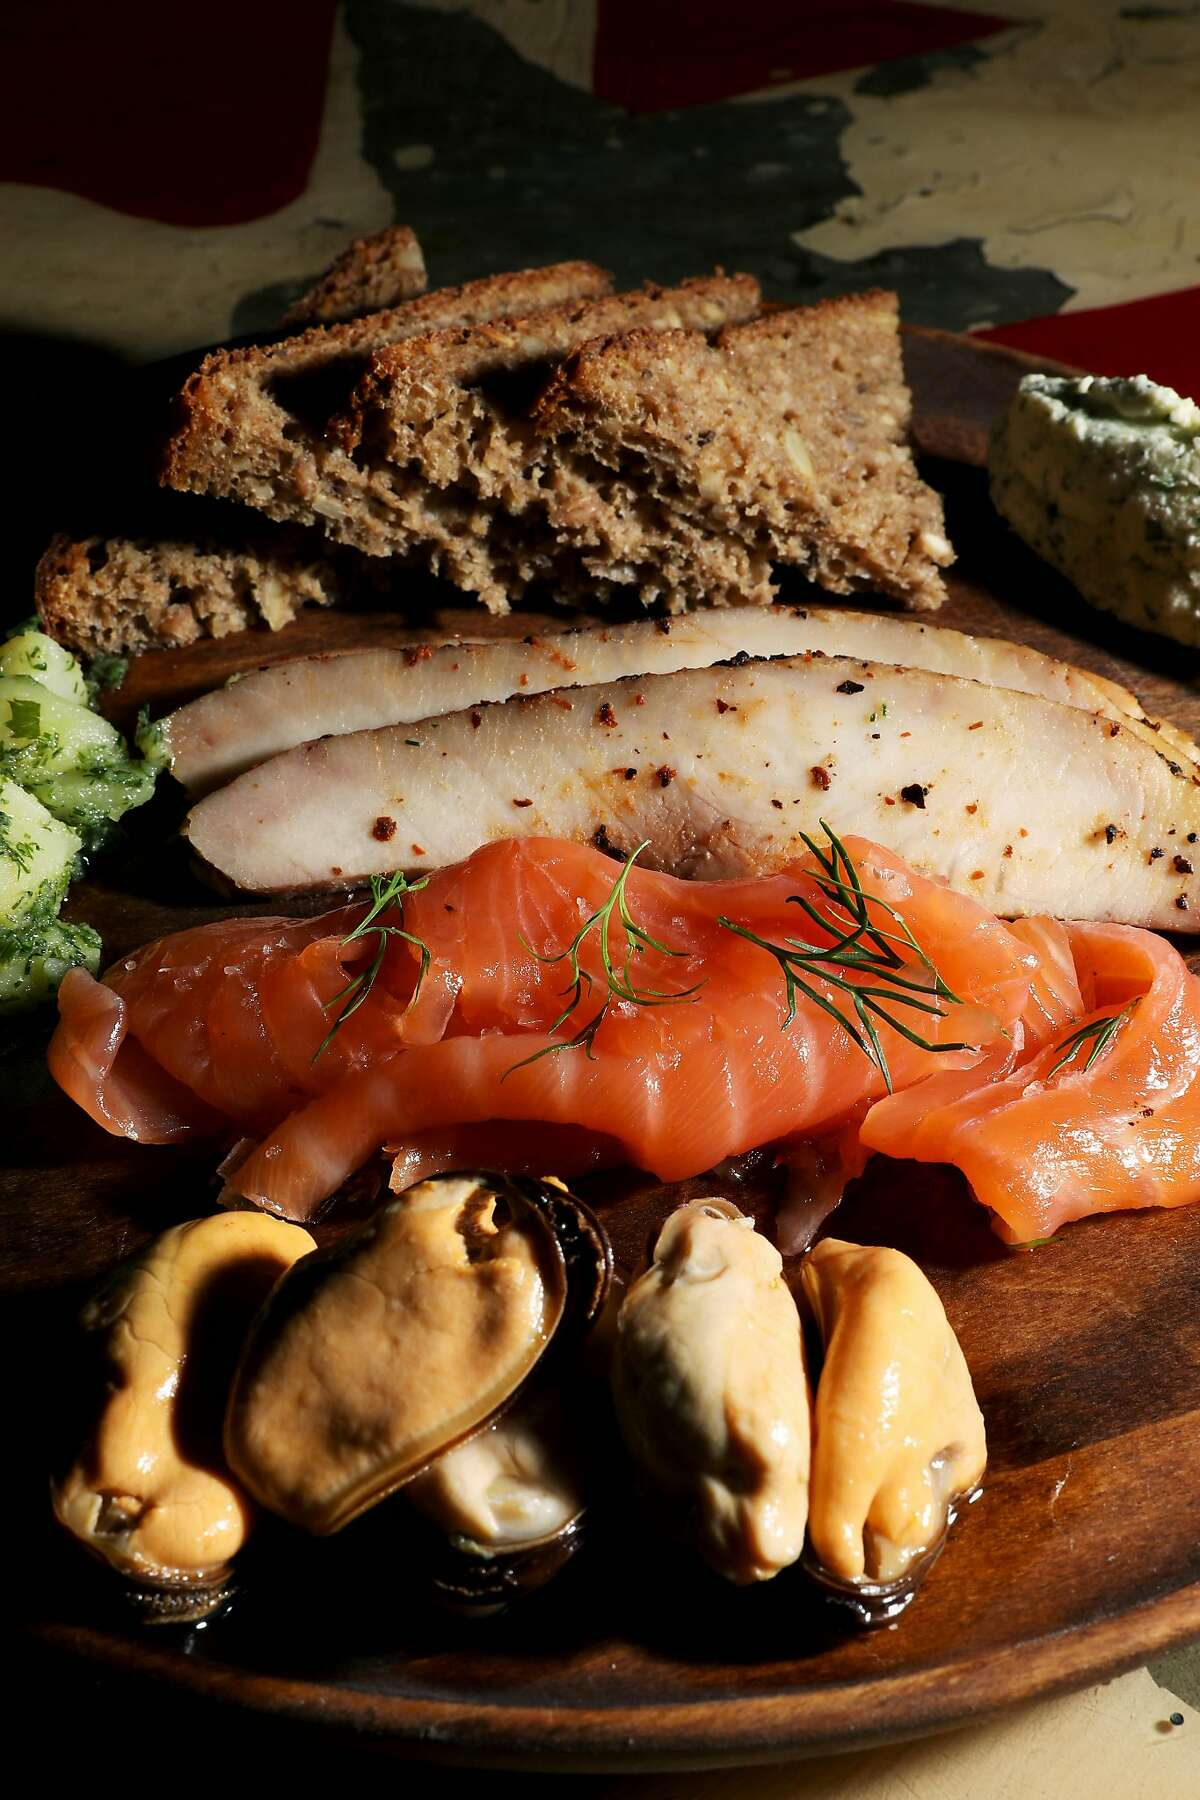 Smoked fish plate features smoked sturgeon, cured salmon, pickled mussels, farmer's cheese, German potato salad, and seeded rye at Dear Inga, located at 3560 18th St., in San Francisco, Calif., on Friday, December 6, 2019.